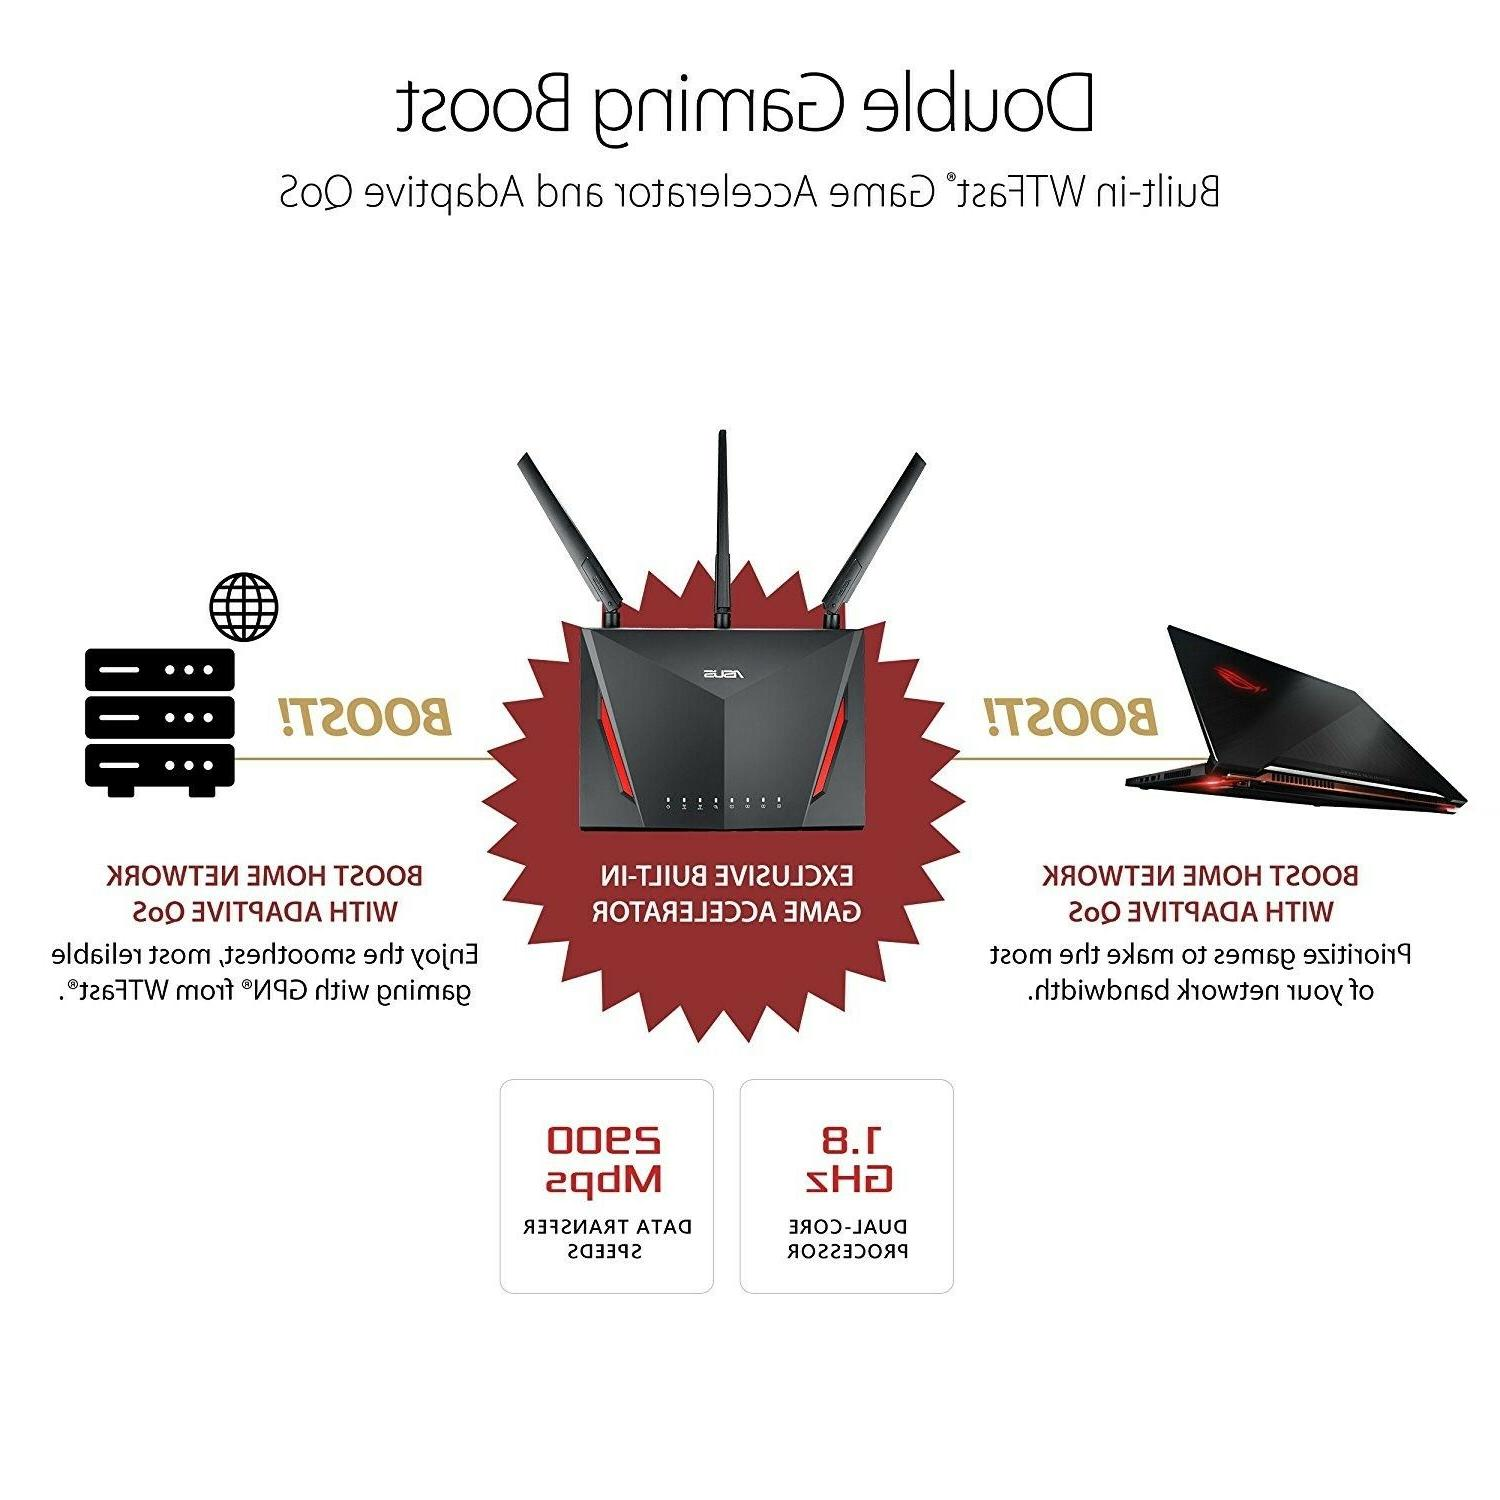 -NEW- Dual-band Gigabit Router